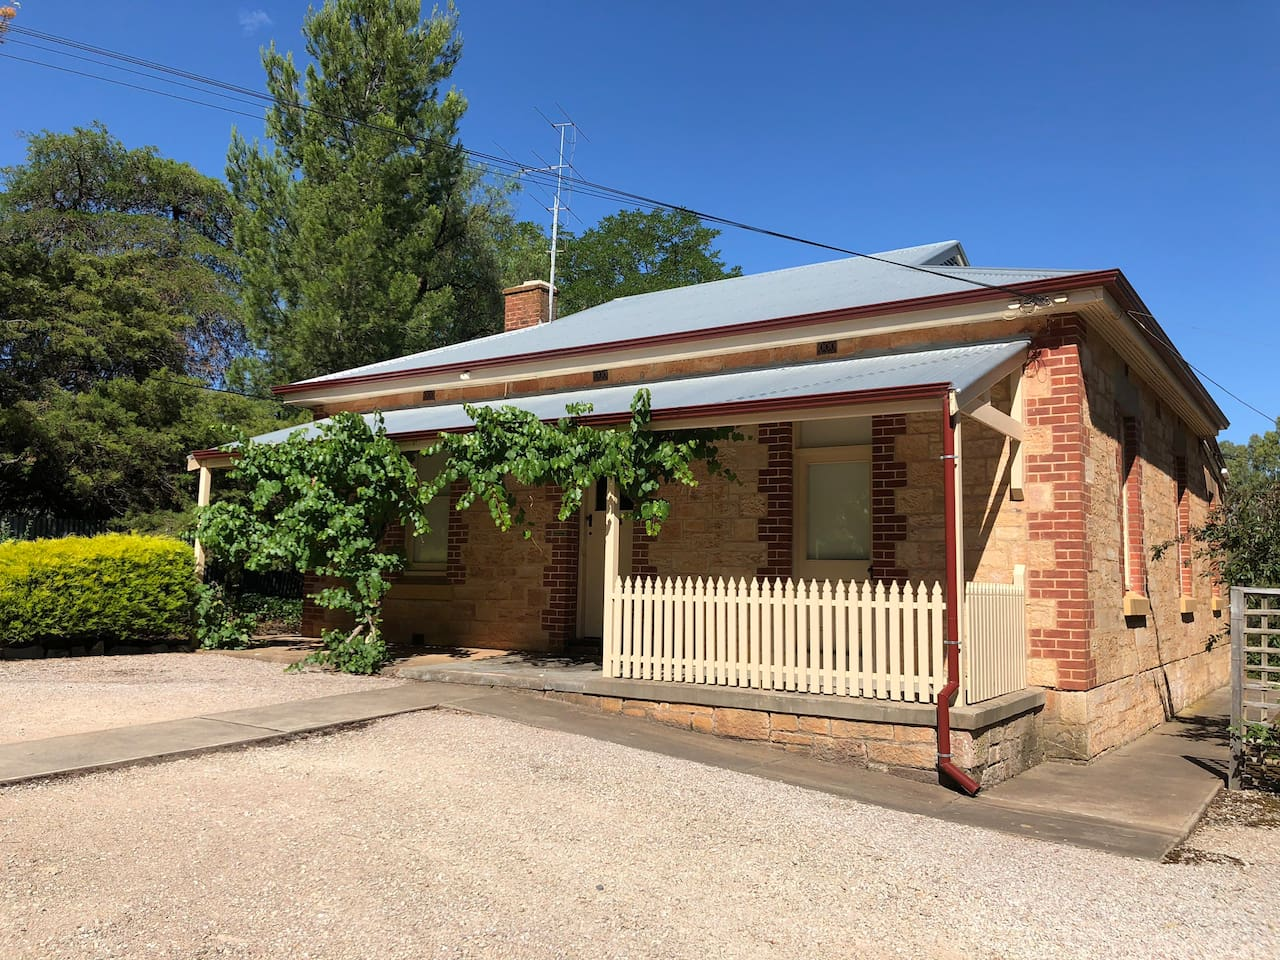 The Principal's Cottage was built in 1922 to provide accommodation for the headmaster and family. The school provided accommodation for the first 50 years.